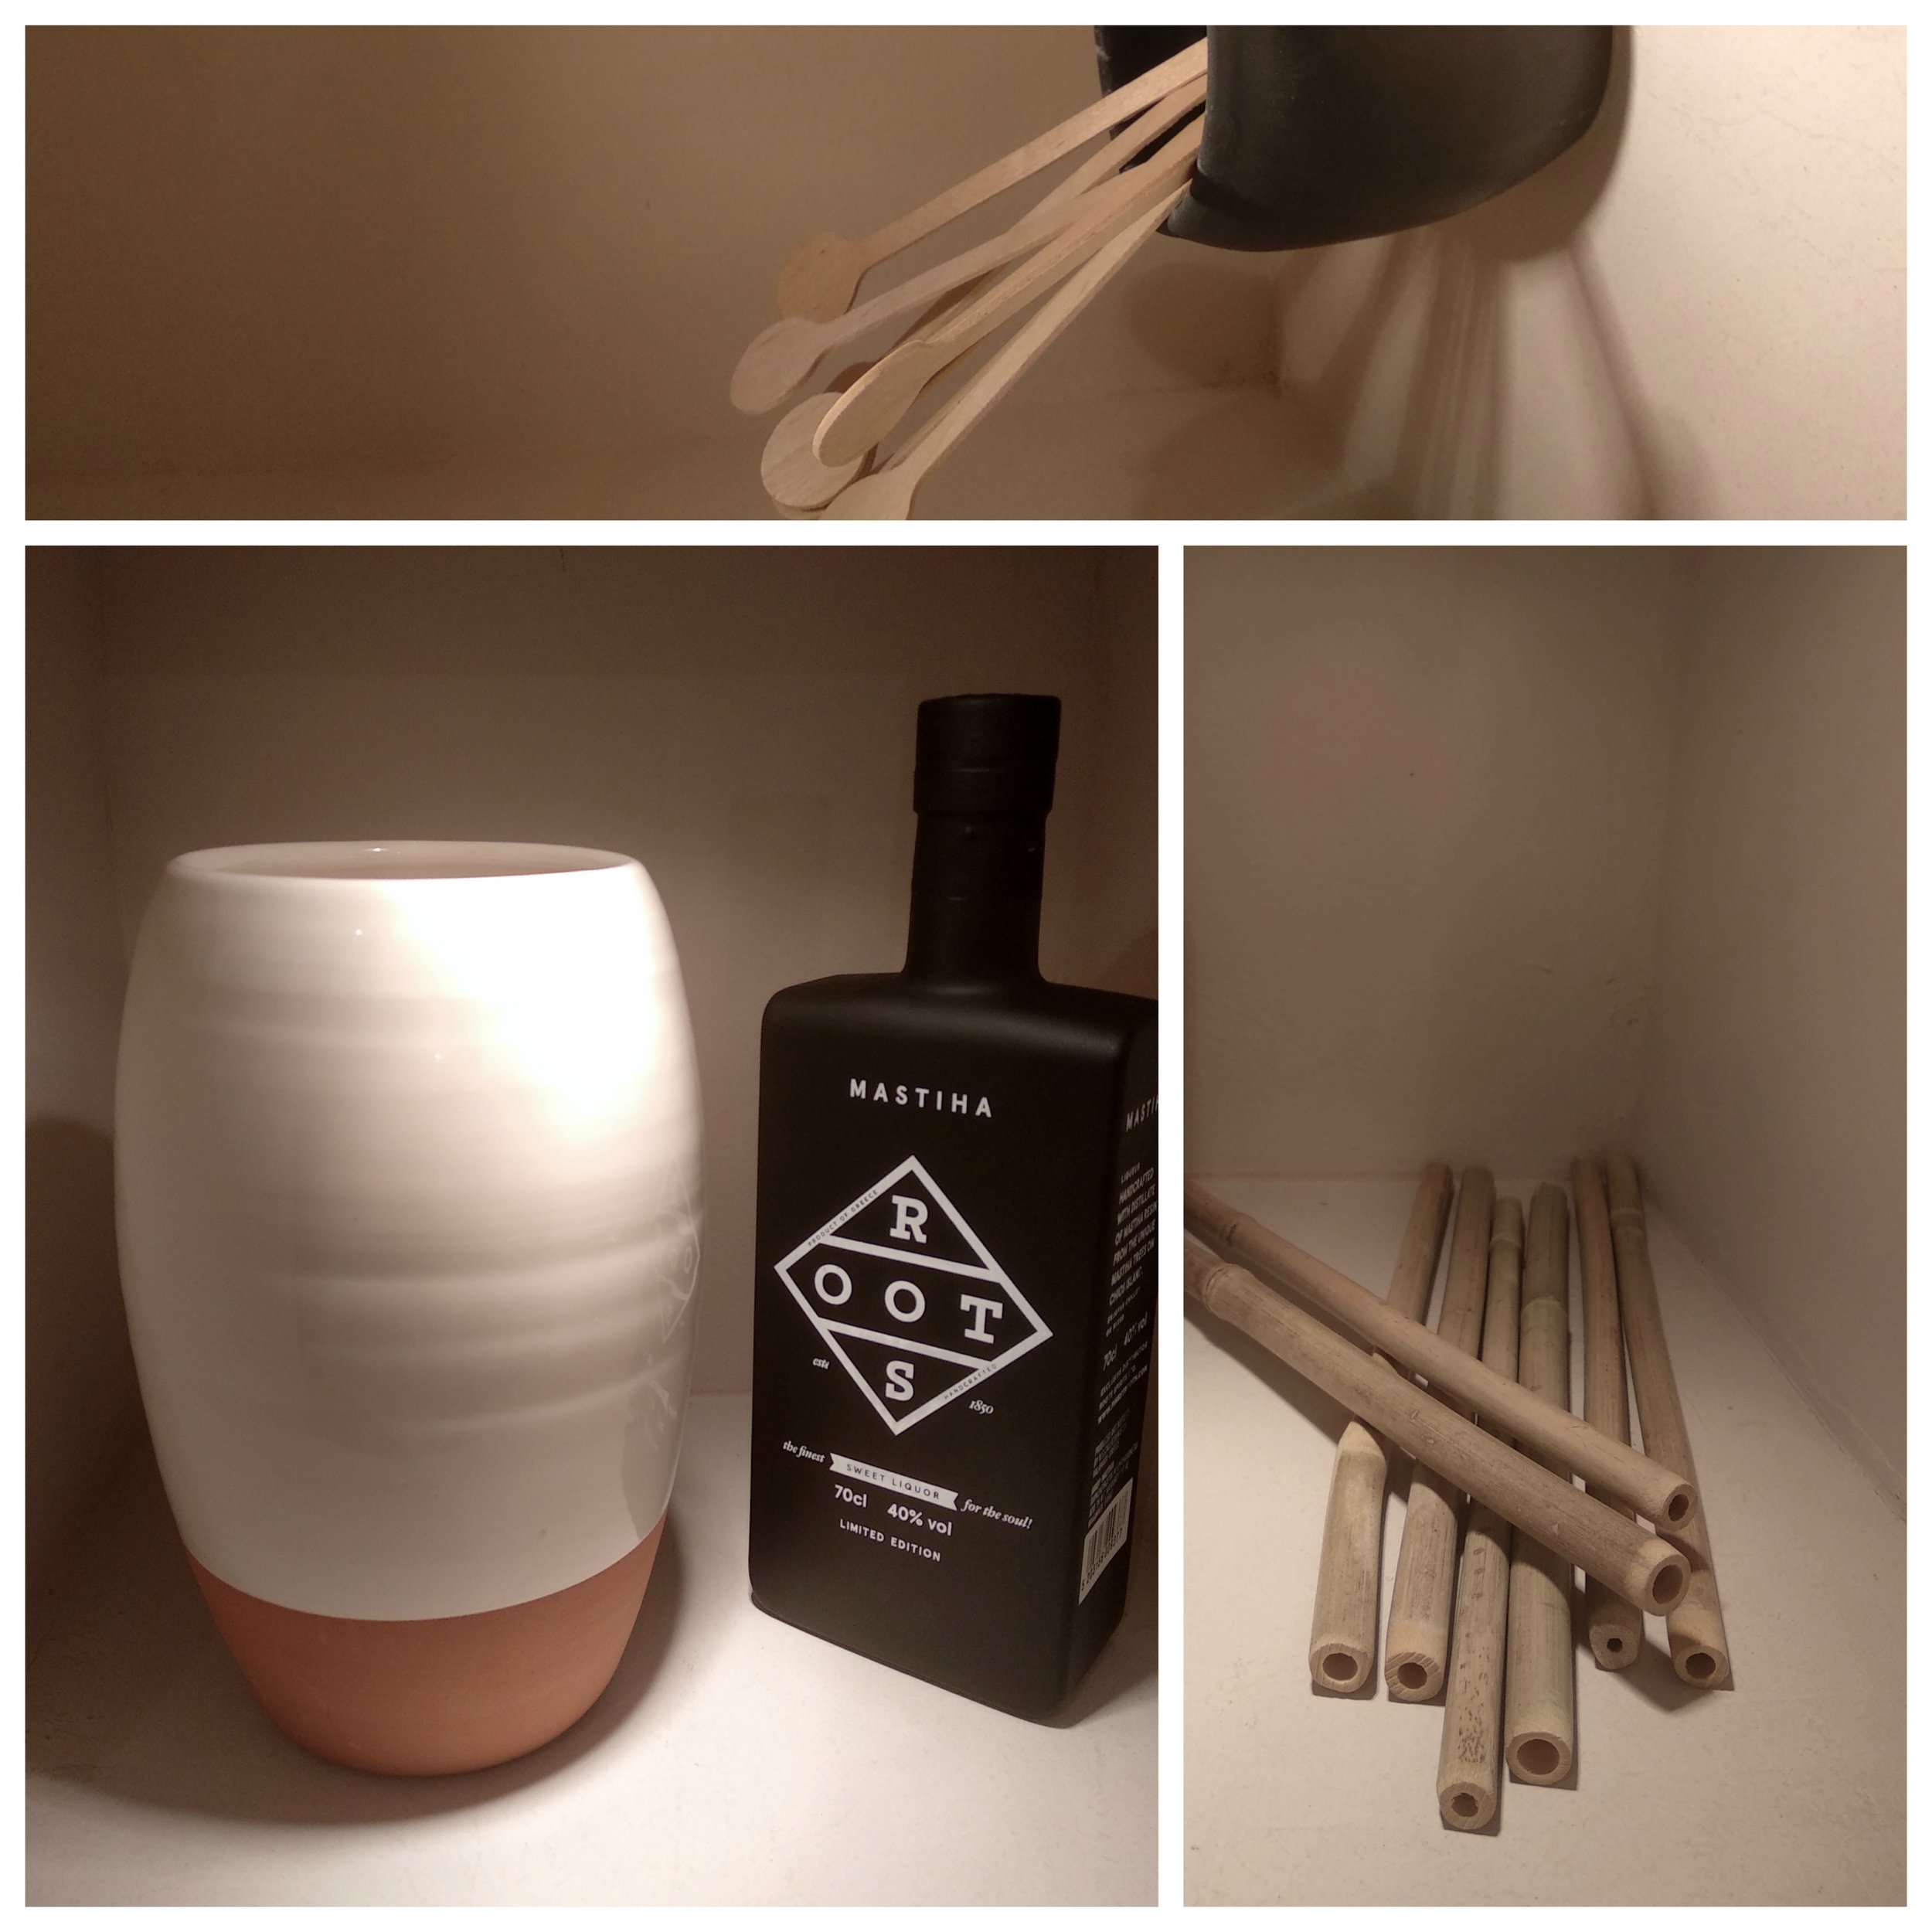 Sustainability kit - SET OF BAMBOO STRAWSWashable, reusable#ditchplasticstraws #refusethestrawCERAMIC AMPHORAA specially redesigned ceramic 'amphora' that can be used for:- a mixing glass- ageing or storing premixed cocktails- open air fermentation, with the cotton coastersECO WOODEN COCKTAIL STIRRERSWashable, reusableCOTTON COASTERSWashable, reusablePOSTER MENUSTo reduce paper waste you will receive the menu of the week with your recipes and your bar credentials in poster frames